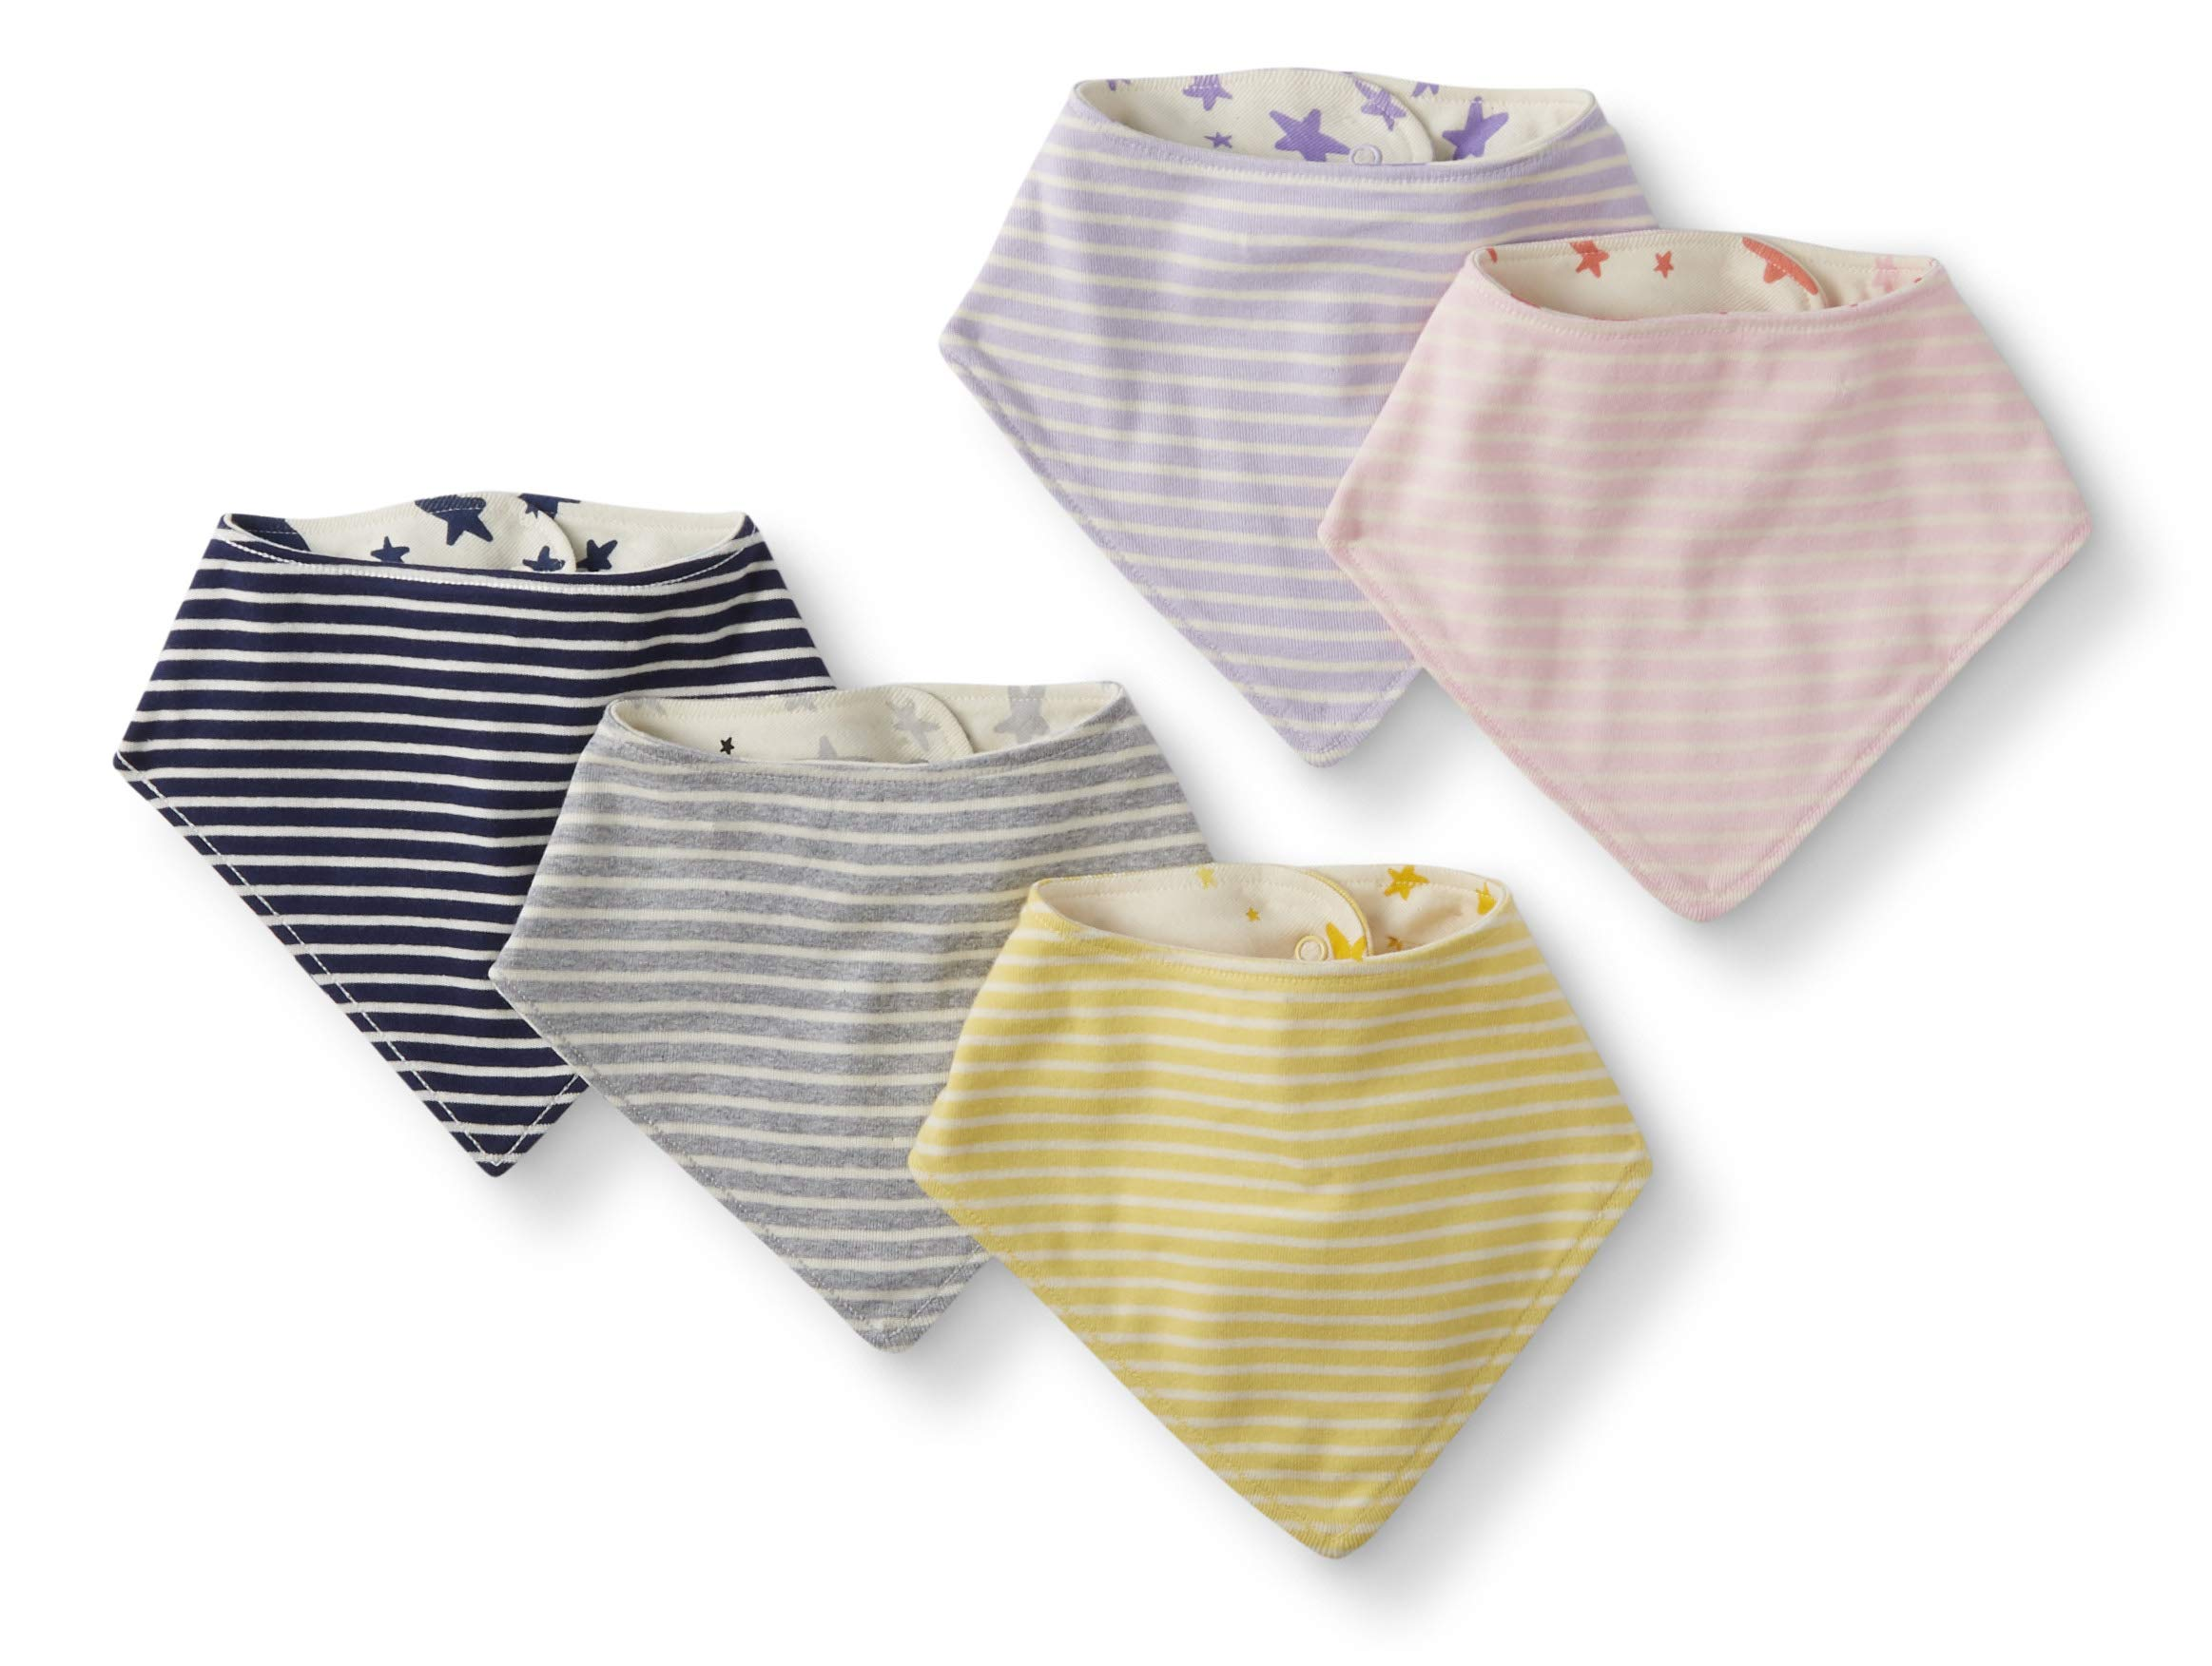 Moon and Back by Hanna Andersson Unisex Baby 5-Pack Organic Cotton Reversible Bib